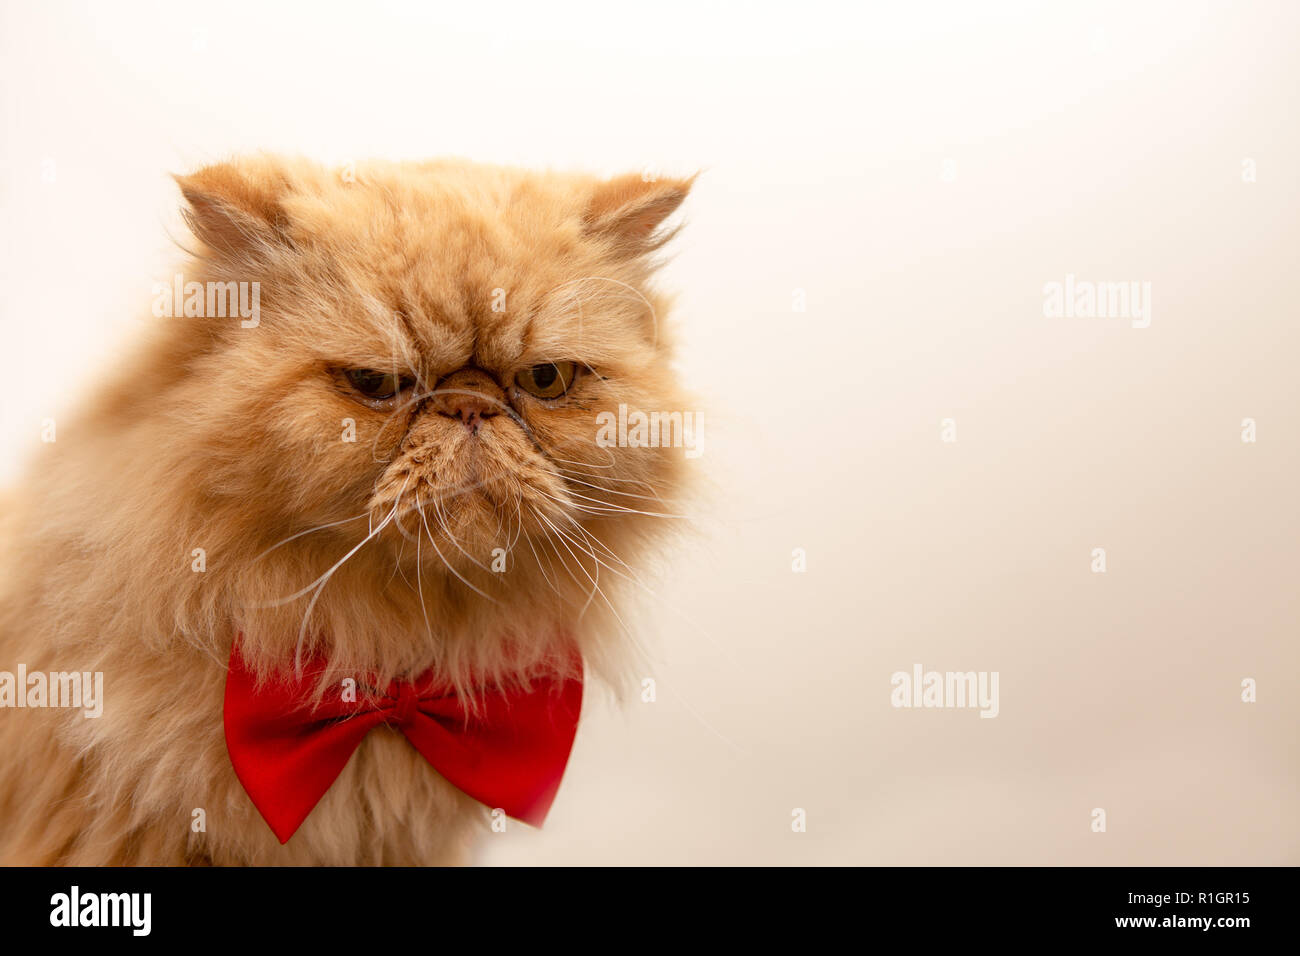 Photo of fluffy ginger cat in red bow tie sitting - Stock Image